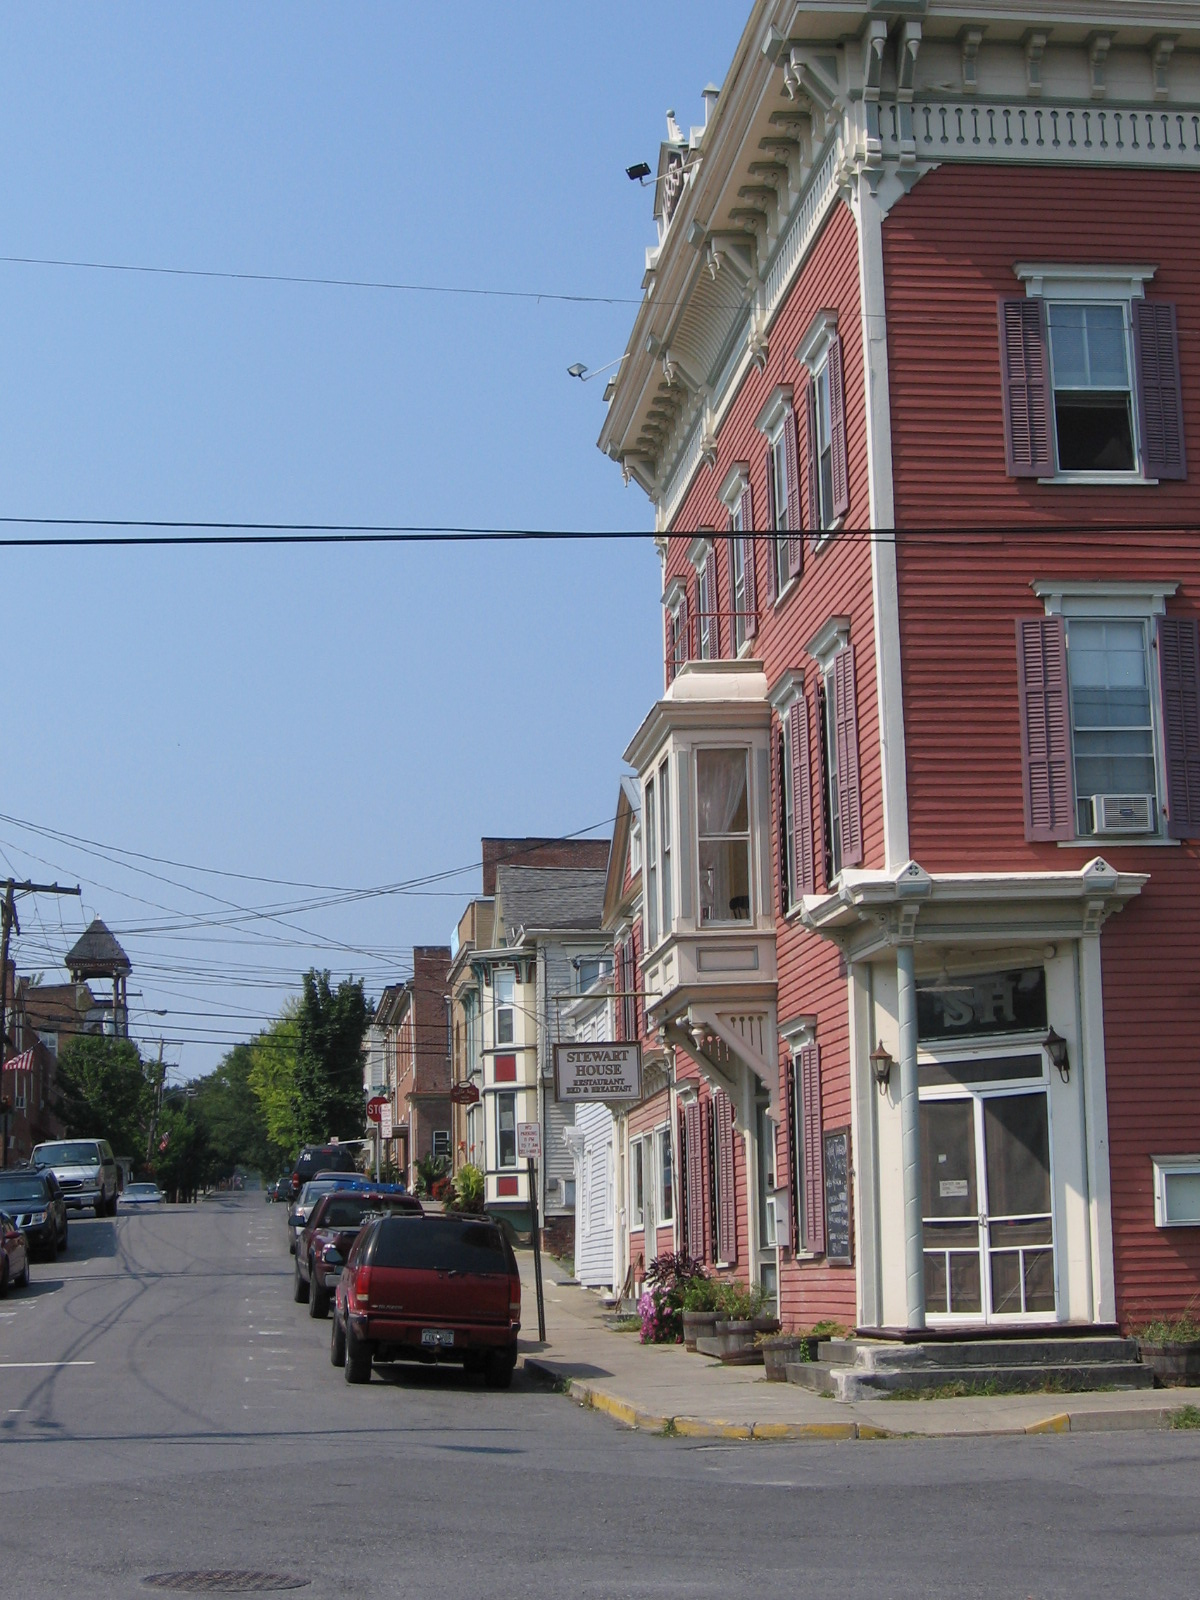 New York City Usa Pictures And Sightseeing Information: Athens (village), New York